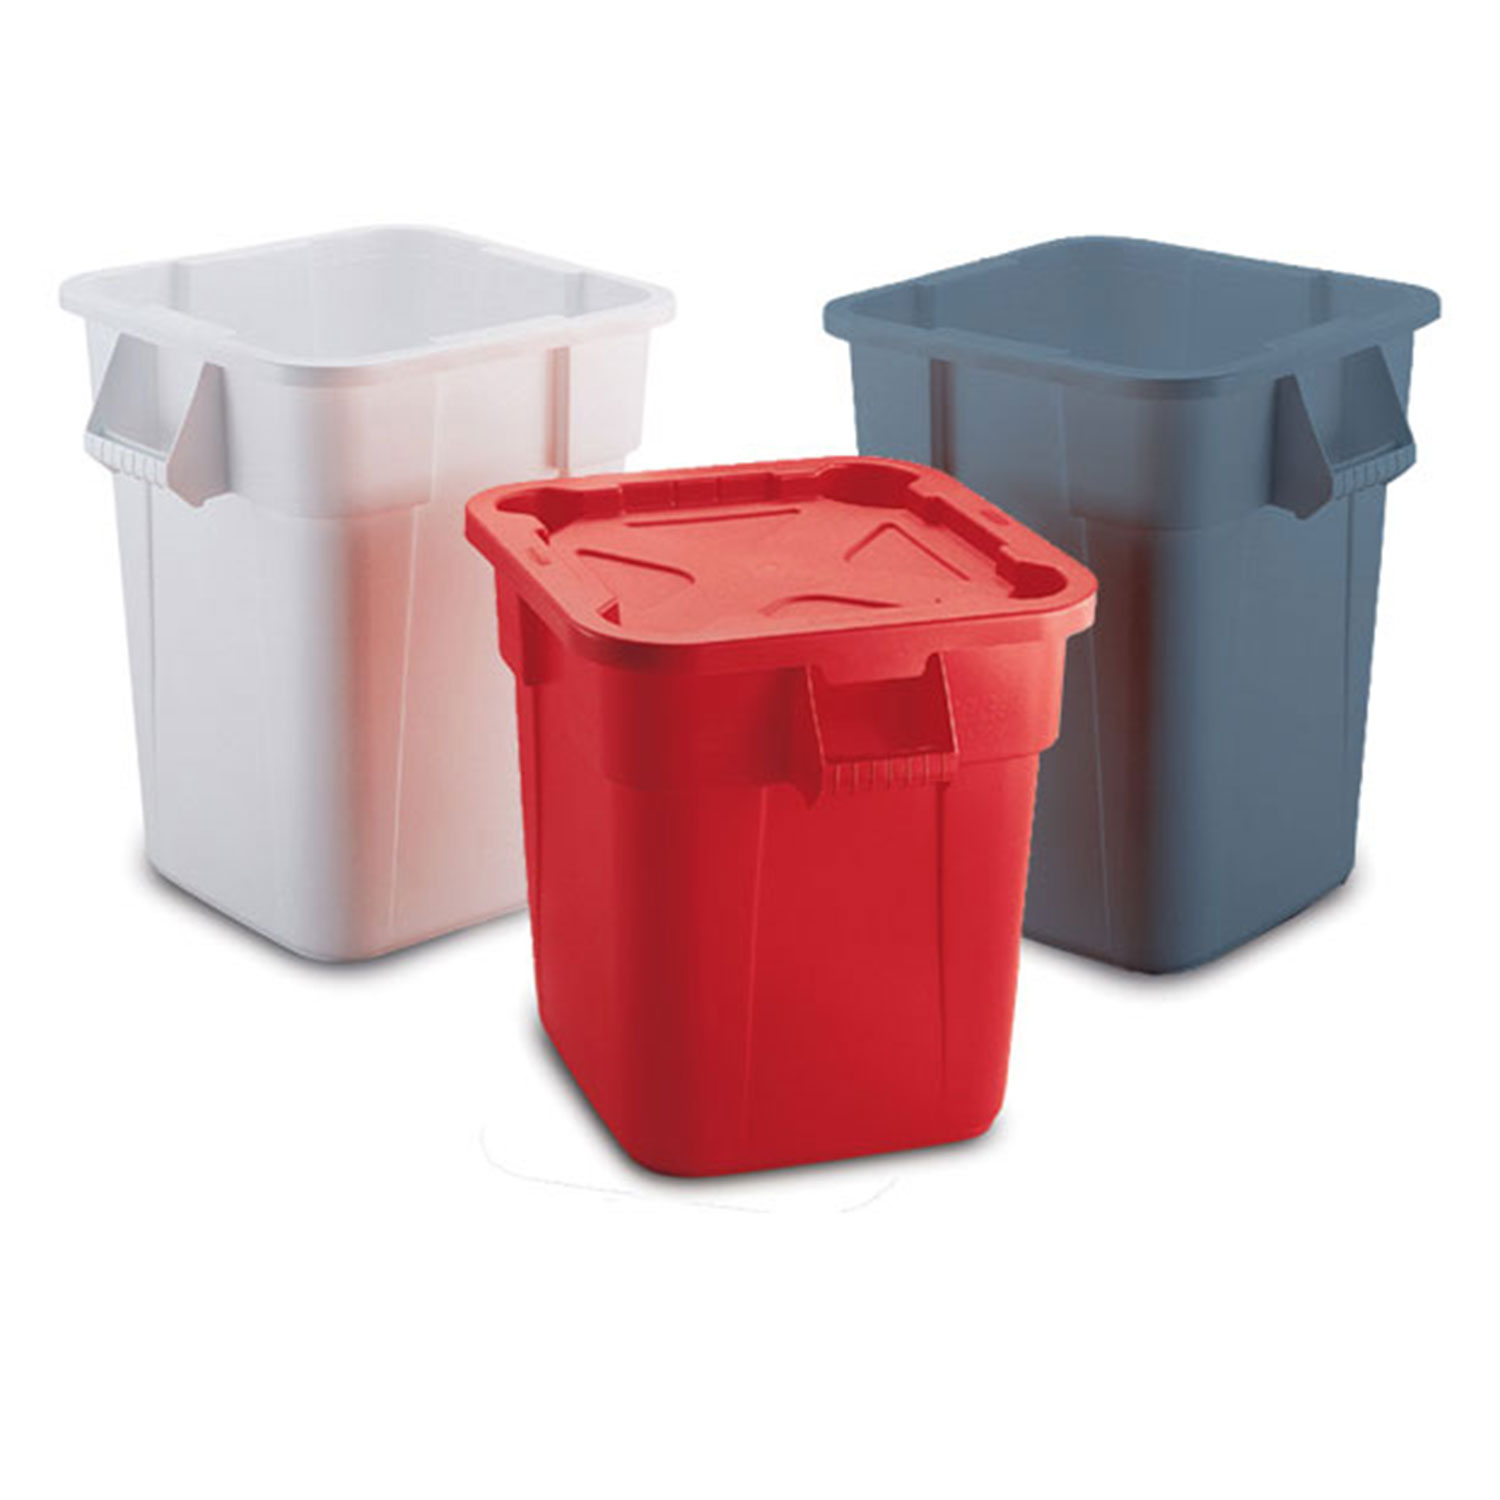 BRUTE Square Containers and Lids